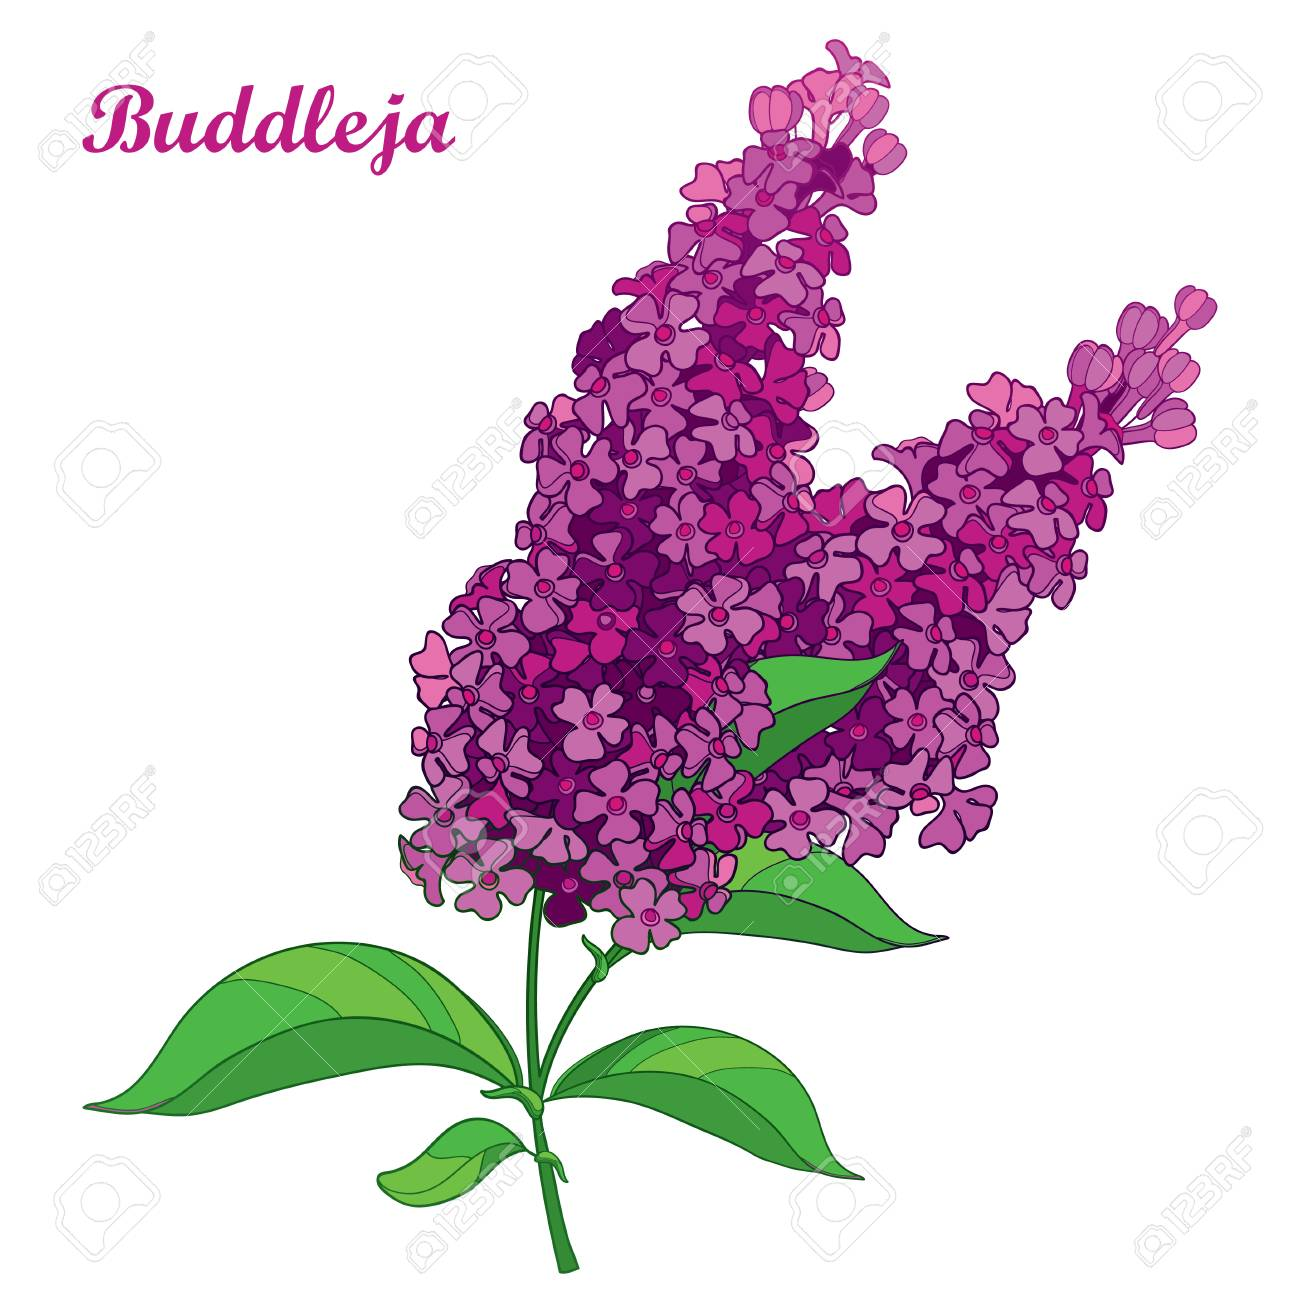 Branch with outline pink Buddleja or butterfly bush flower bunch and ornate leaf isolated on white background. Blooming plant Buddleja in contour style for summer design. - 106222364